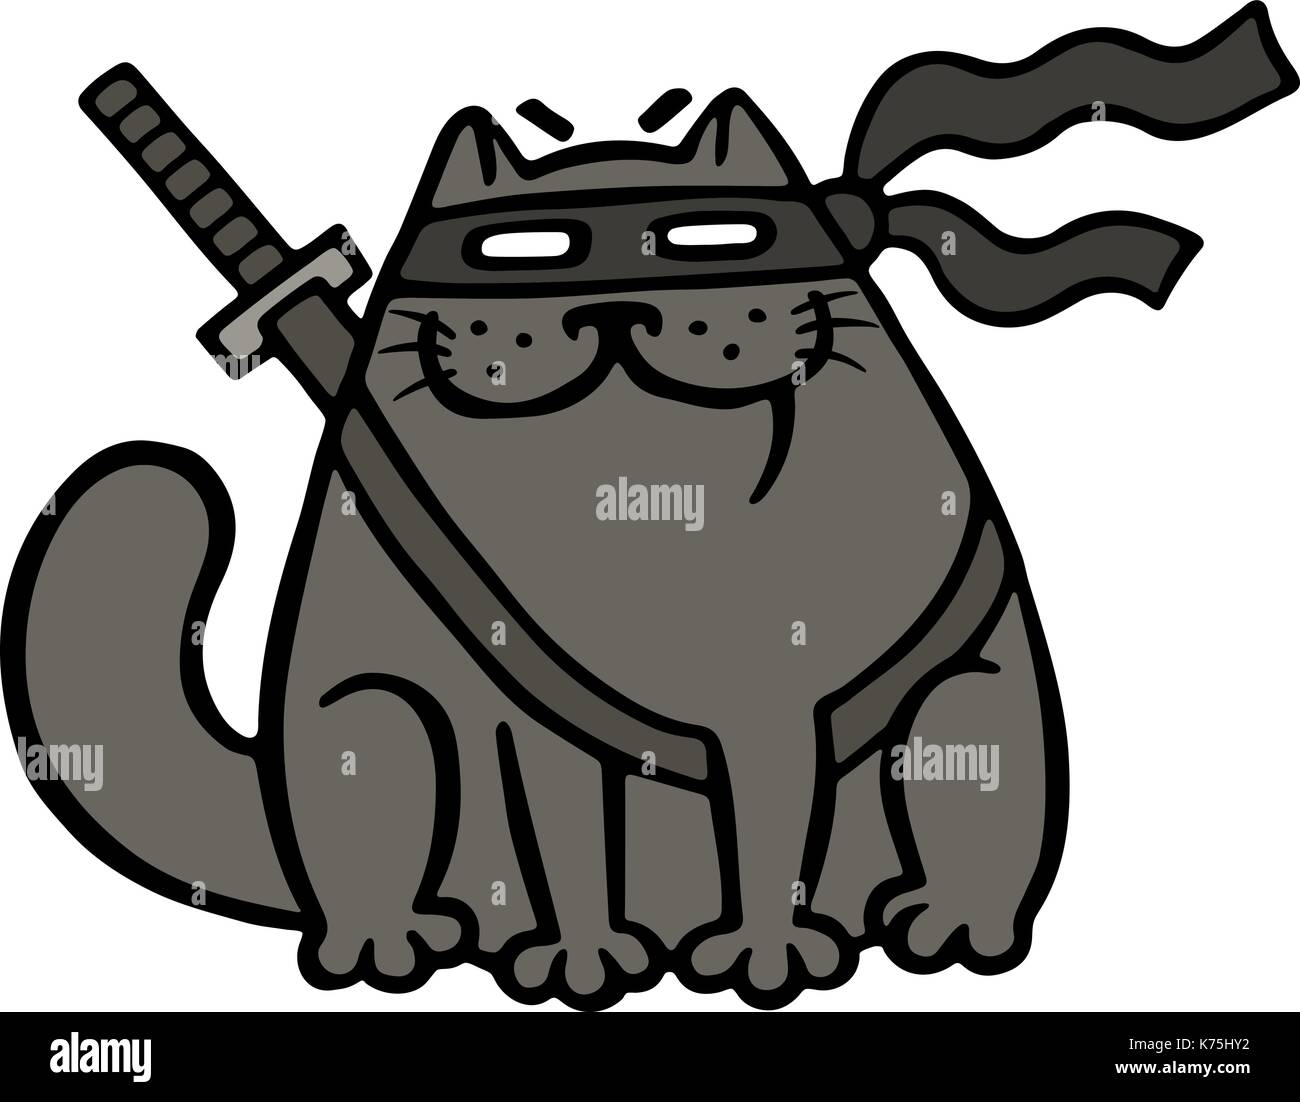 angry cat sounds mp3